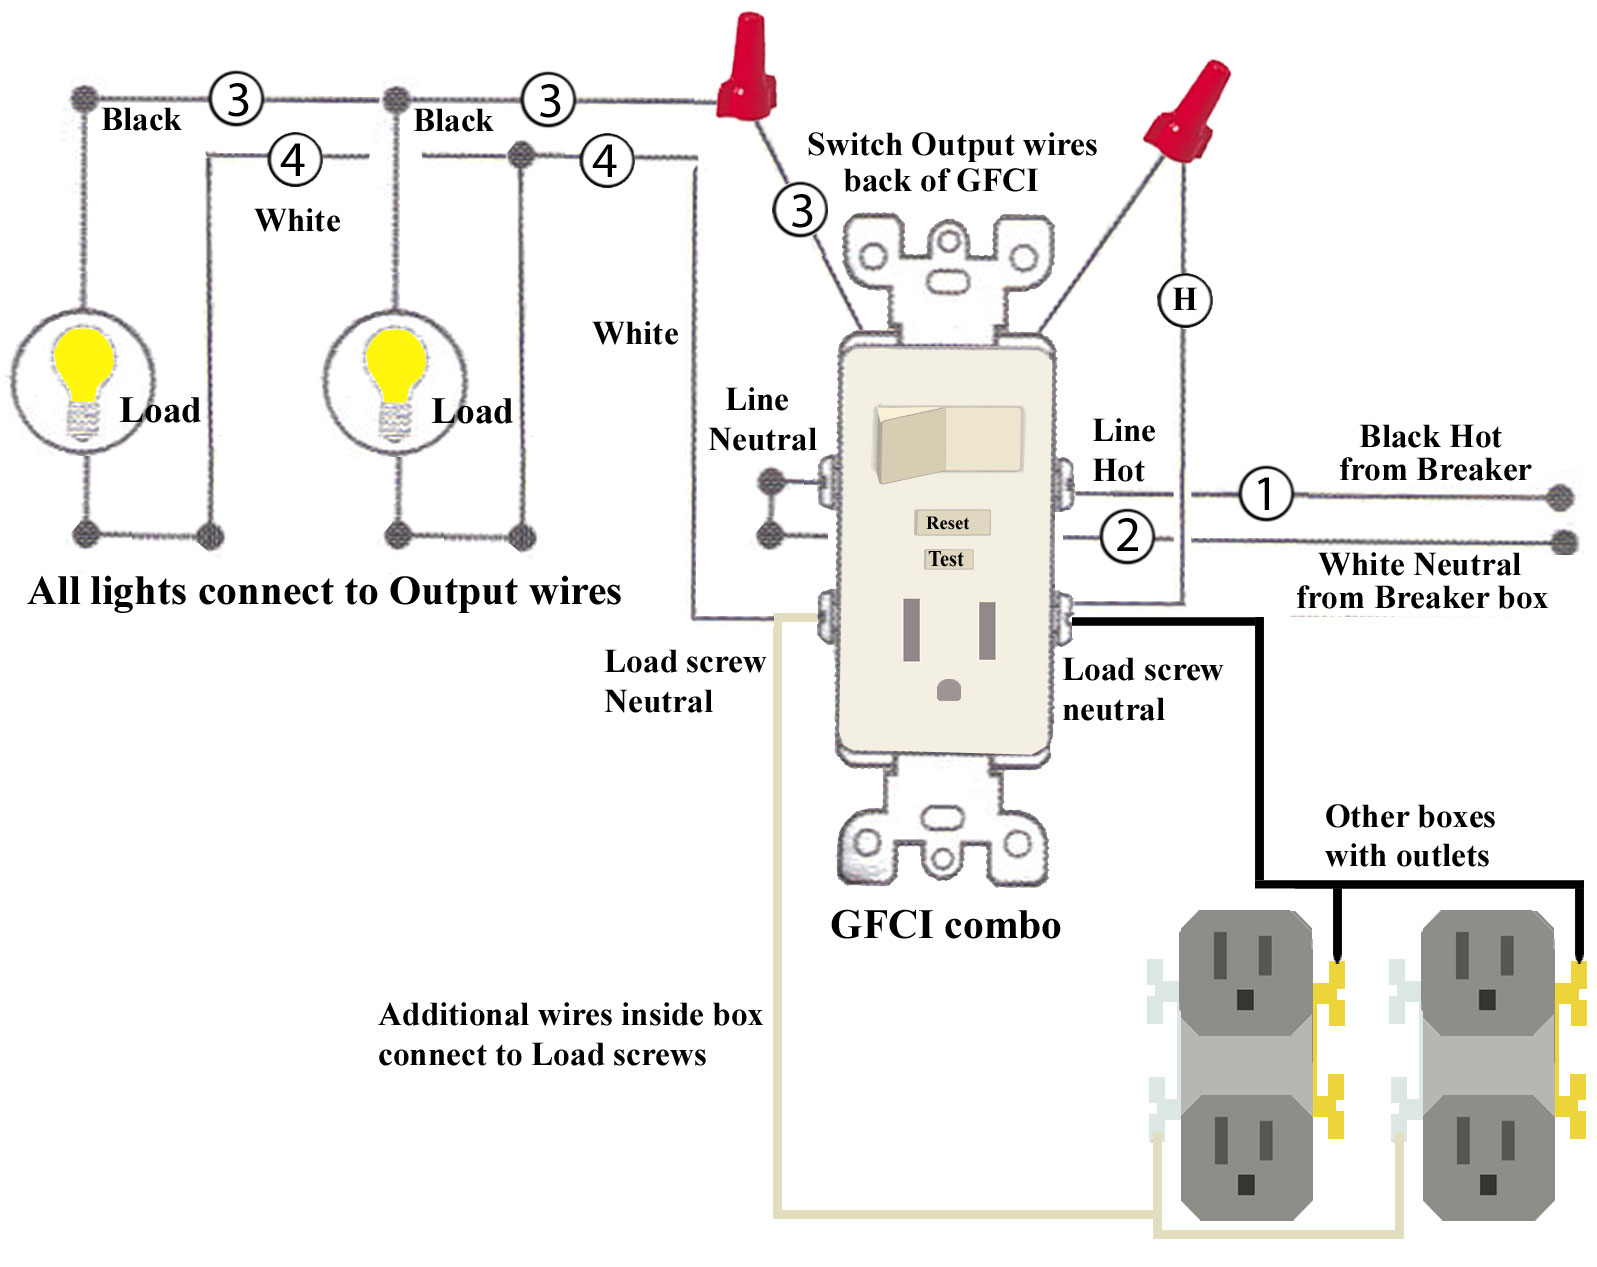 hight resolution of how to install and troubleshoot gfcigfci light switch and electrical wiring diagram 15